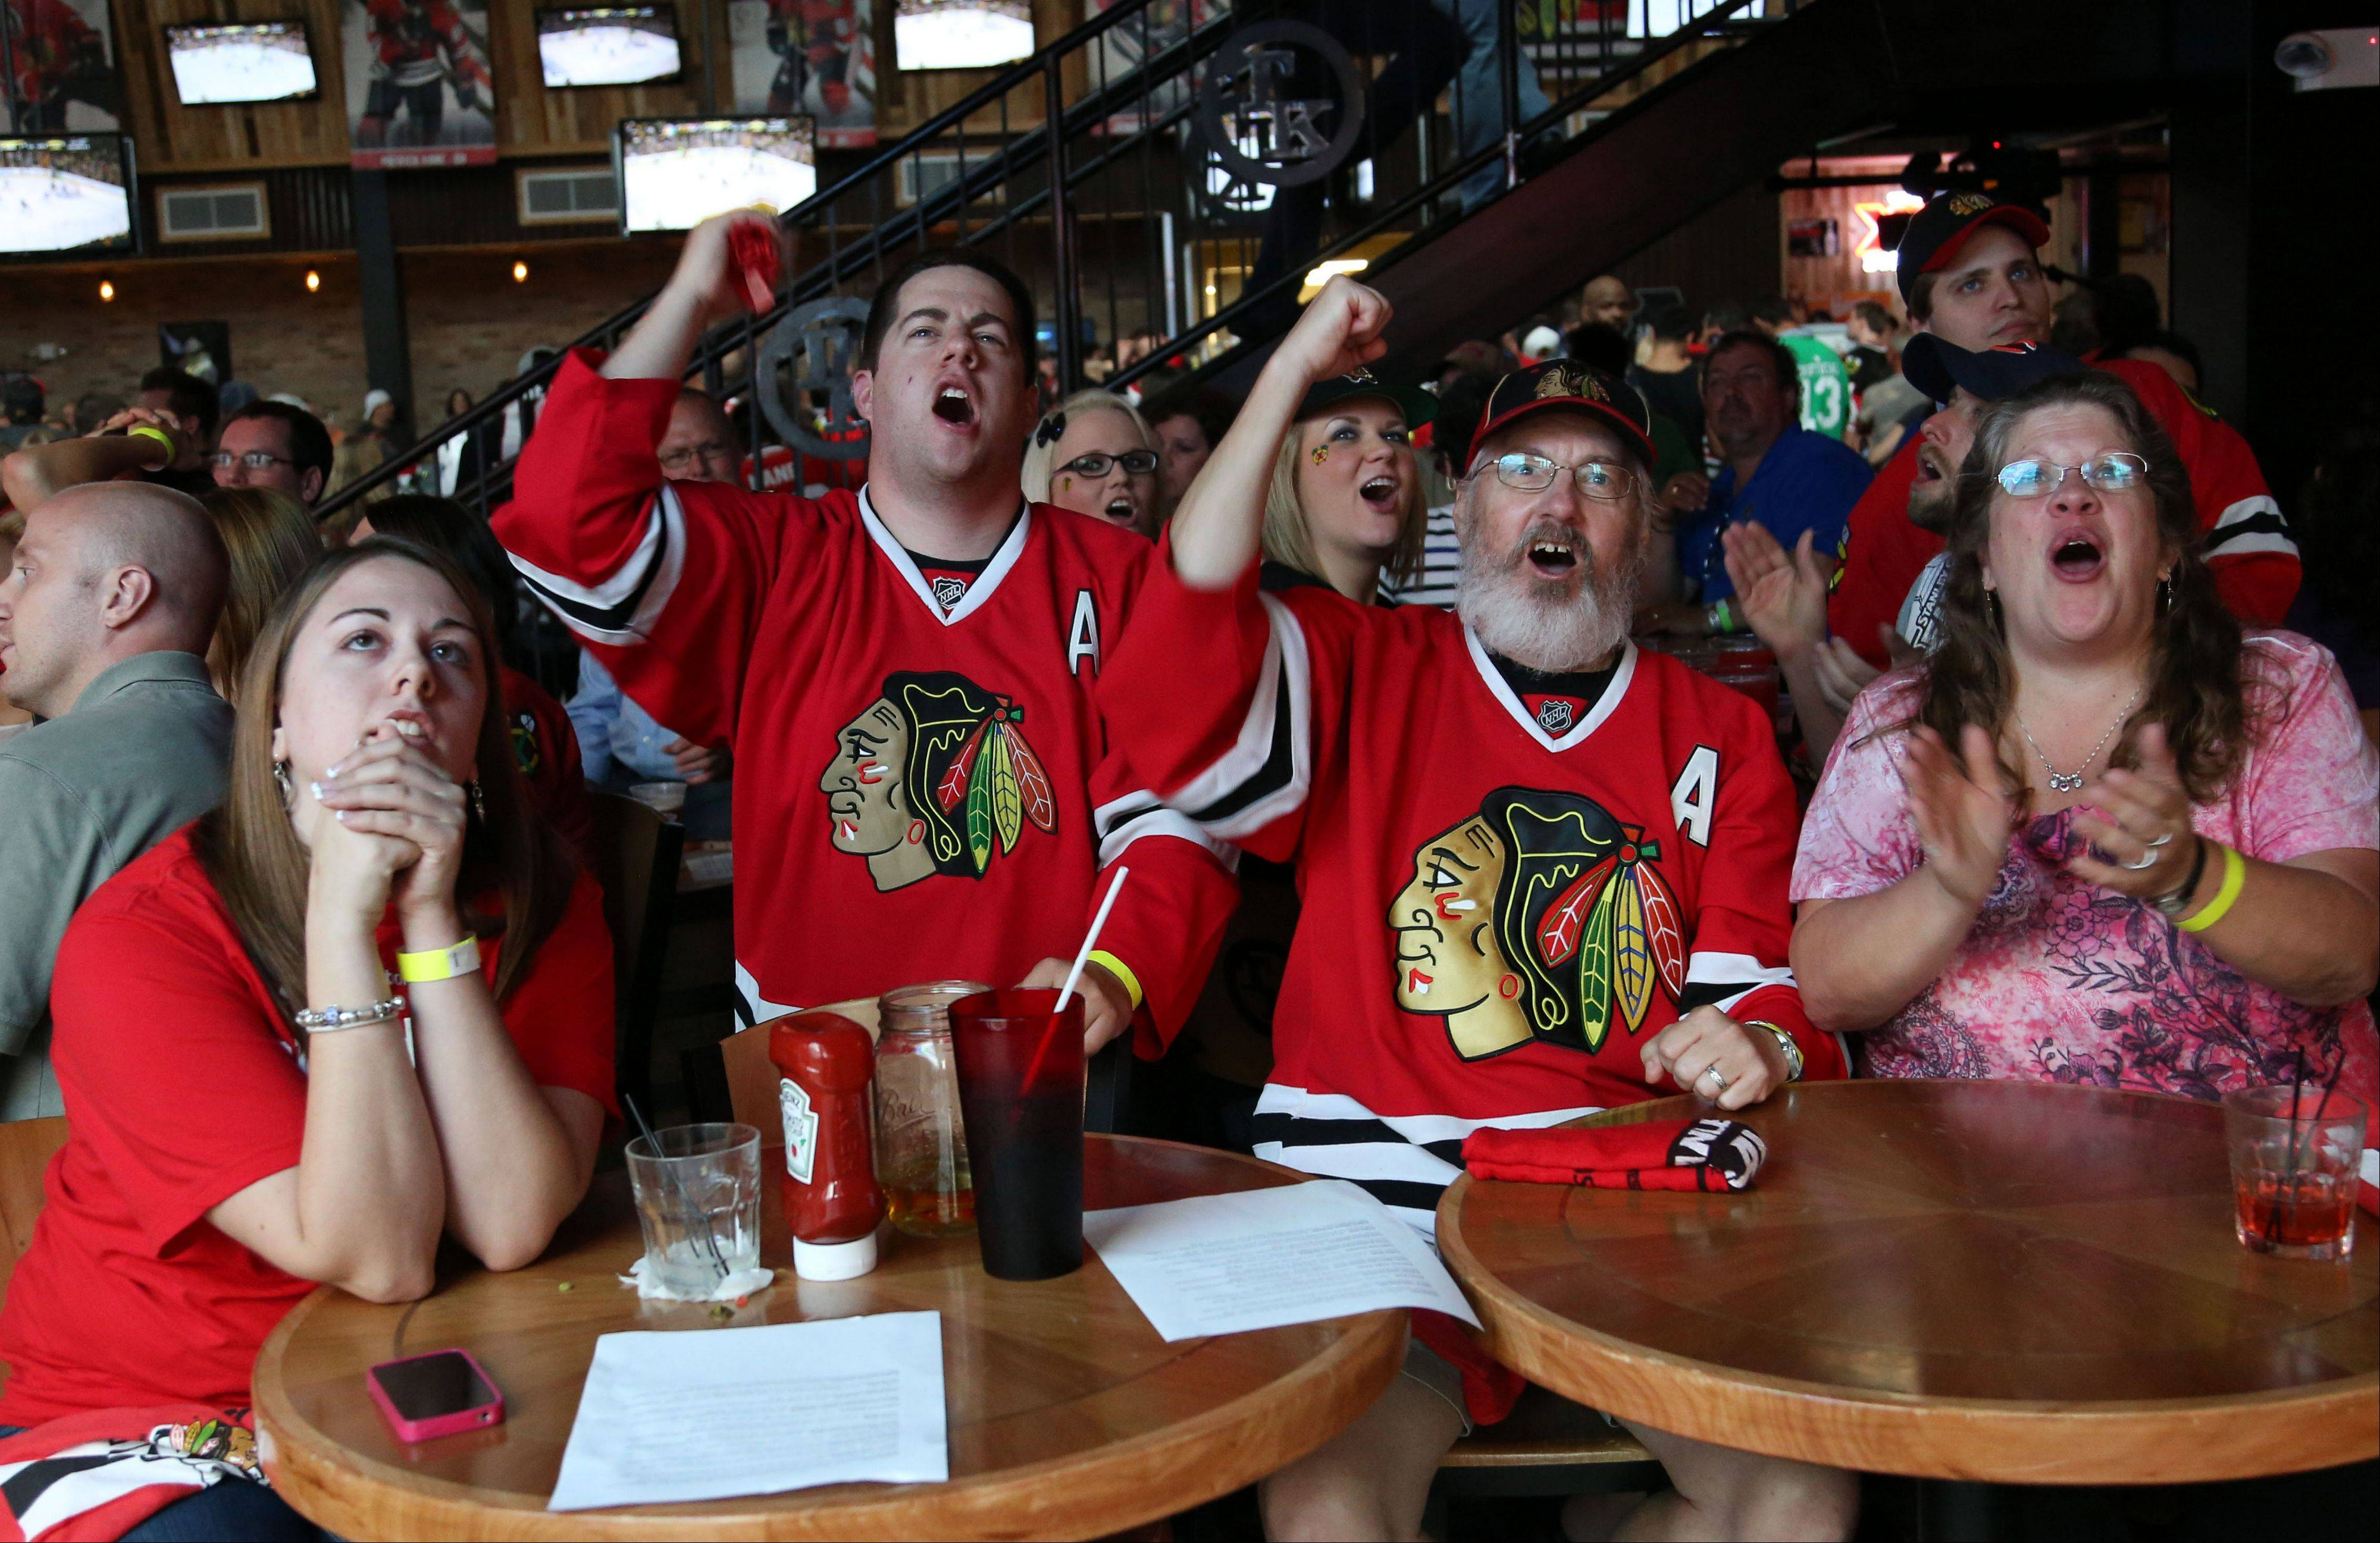 From left, Hayley McQuillan, Dan Leuze, Joe Leuze and Marilyn Leuze, all of Glendale Heights cheer as they watch game six of the Stanley Cup Finals at Toby Keith's I Love This Bar in Rosemont Monday night.